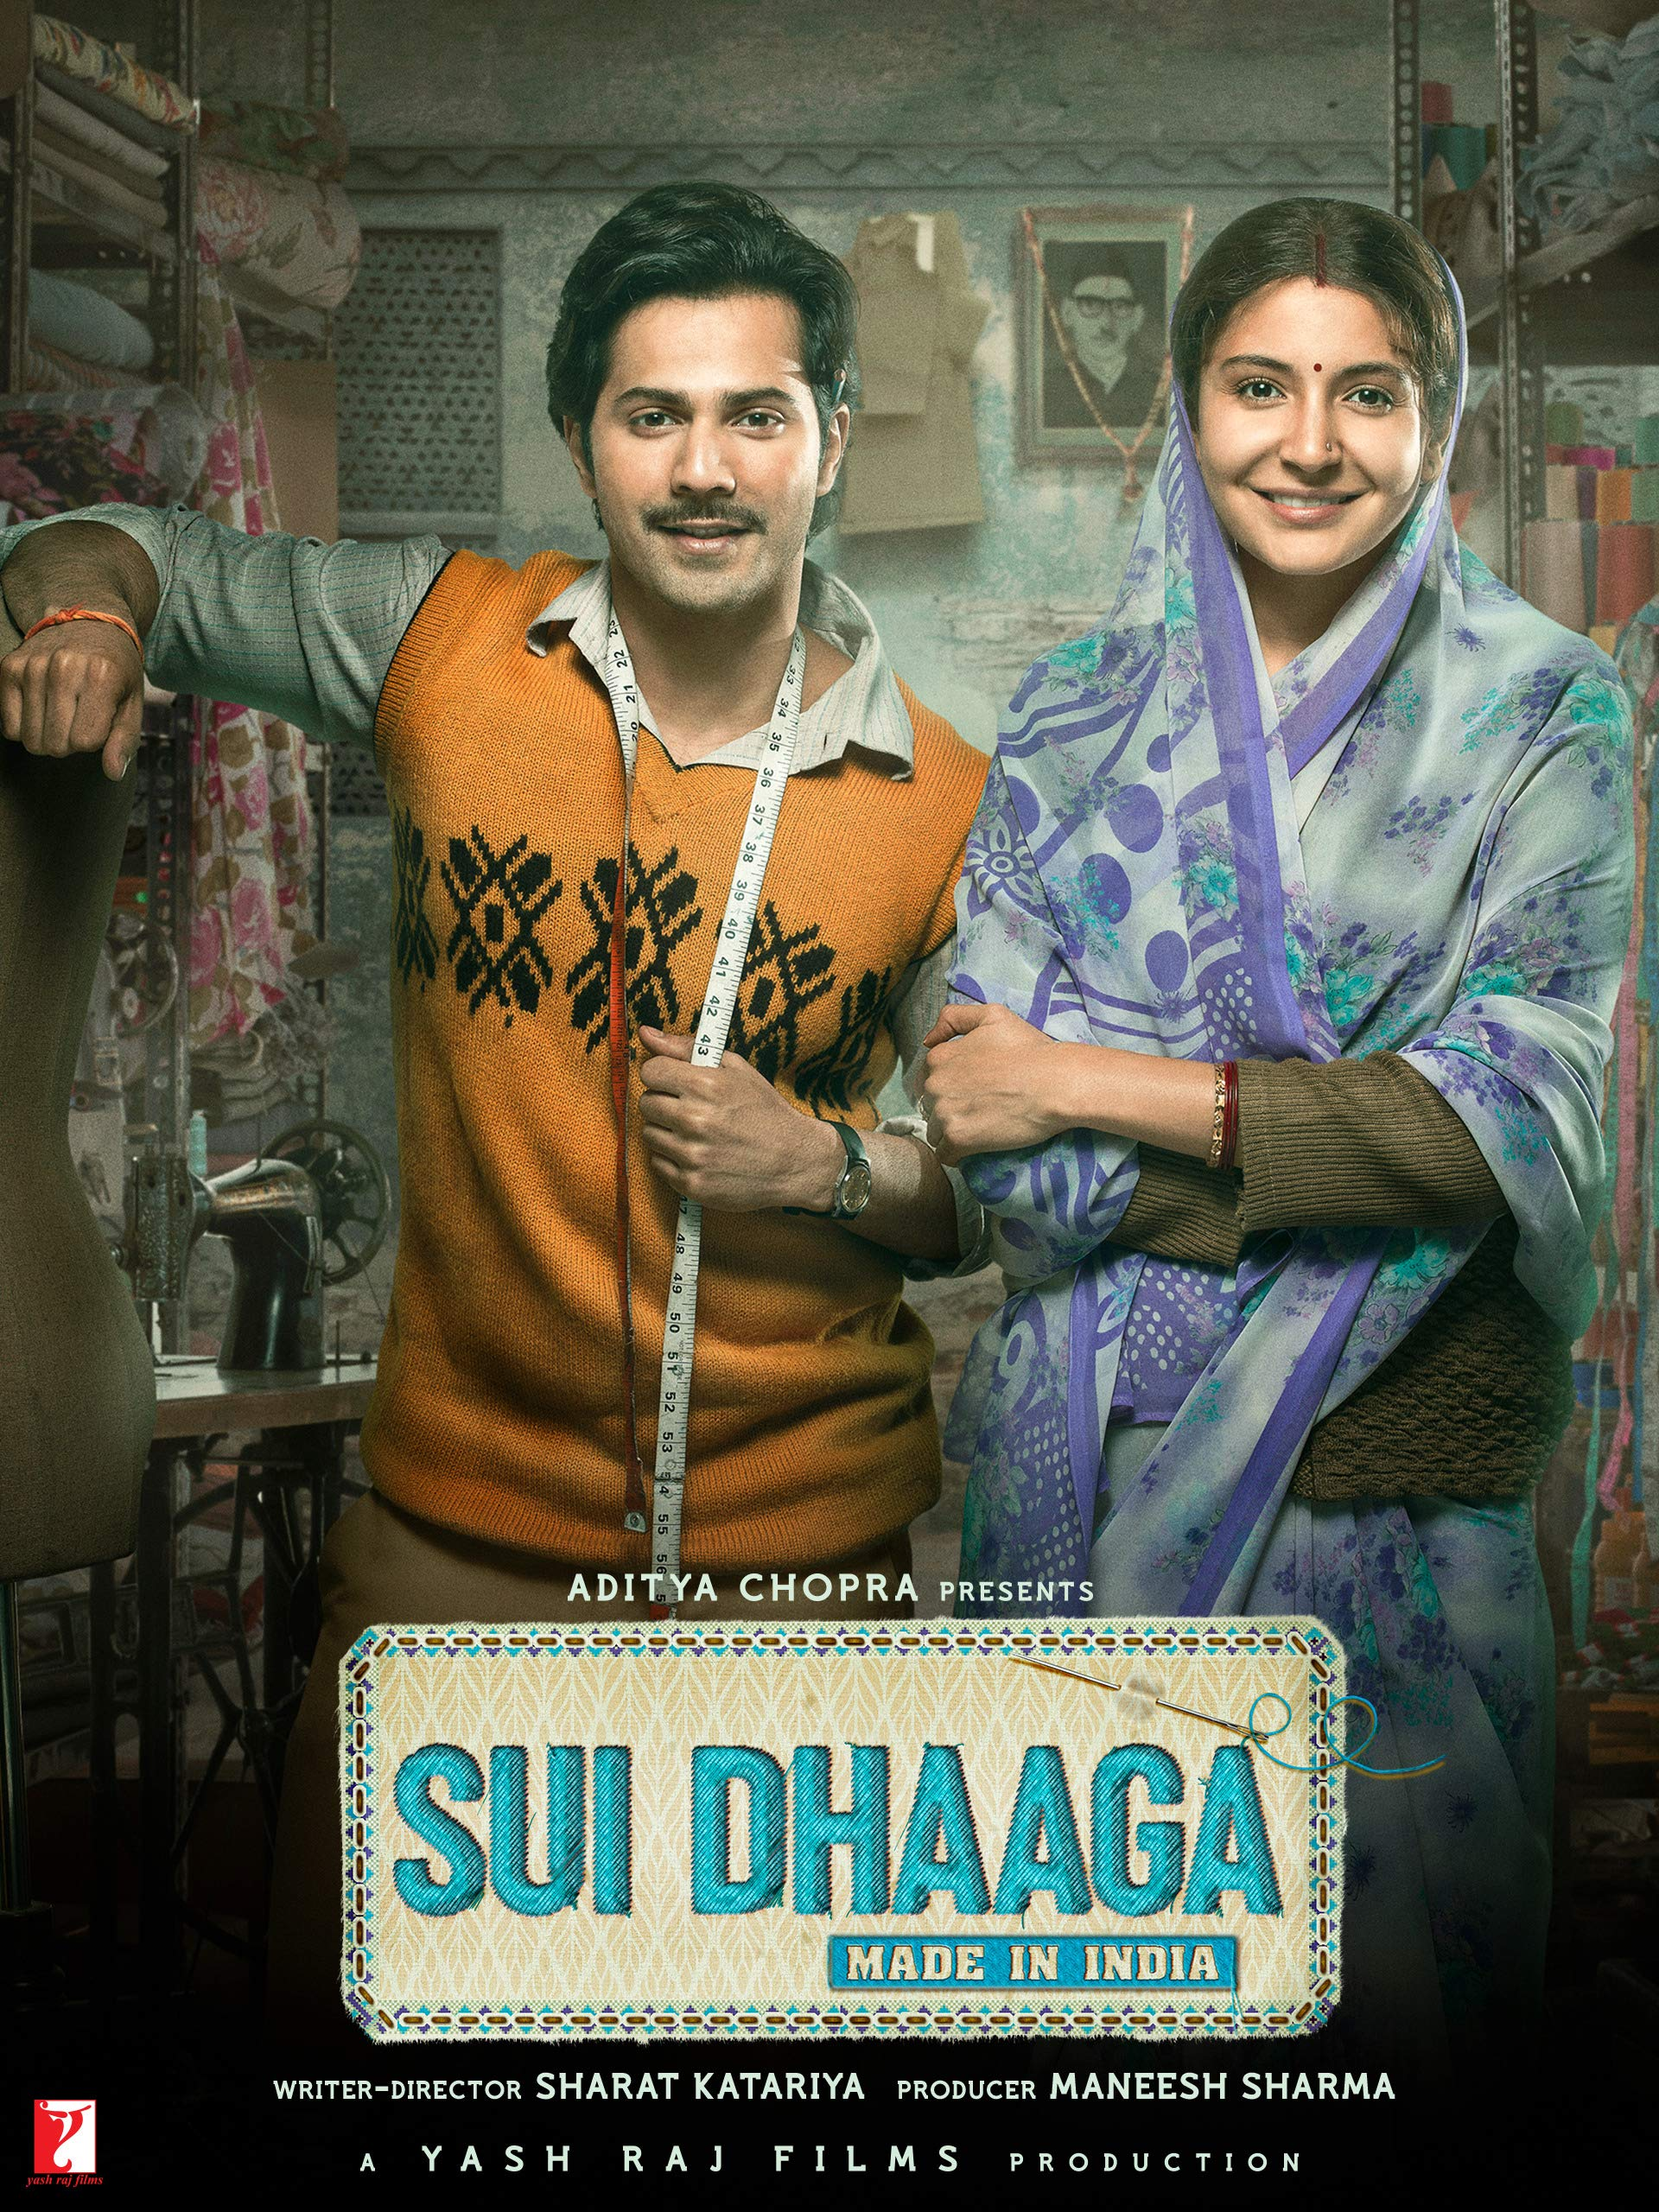 Sui Dhaaga - Made In India on Amazon Prime Video UK